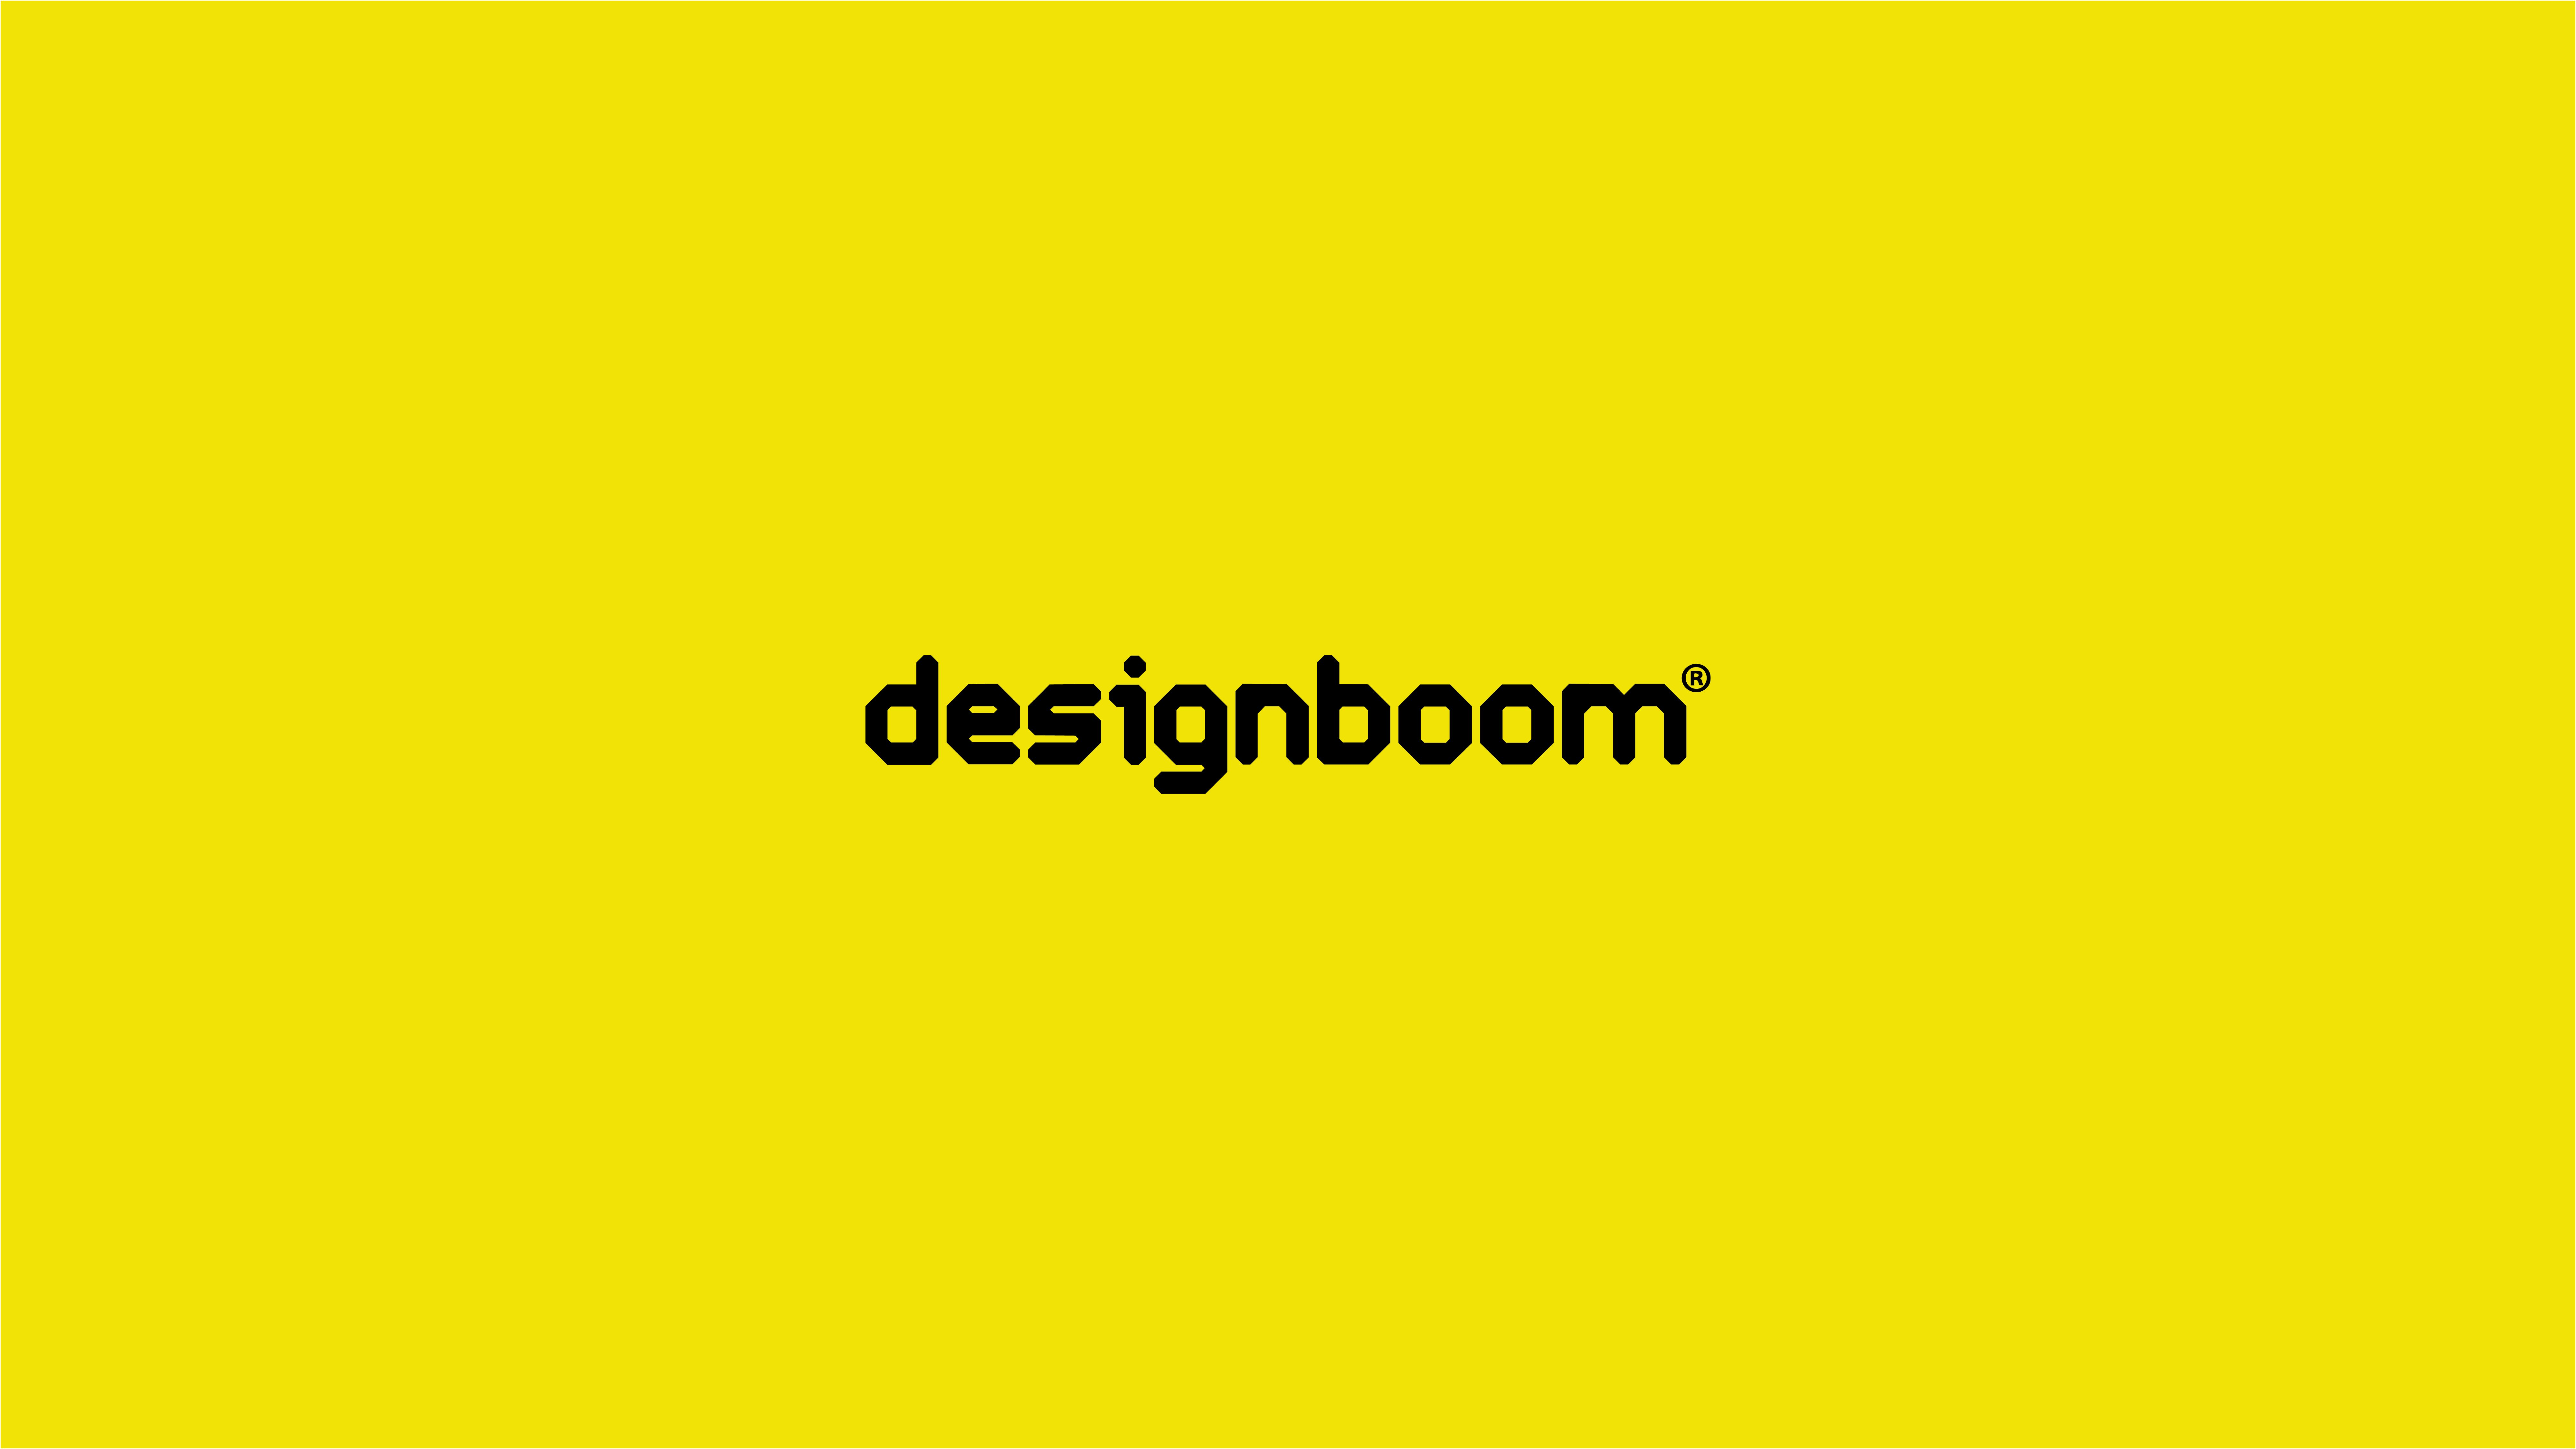 The word designboom on a yellow background